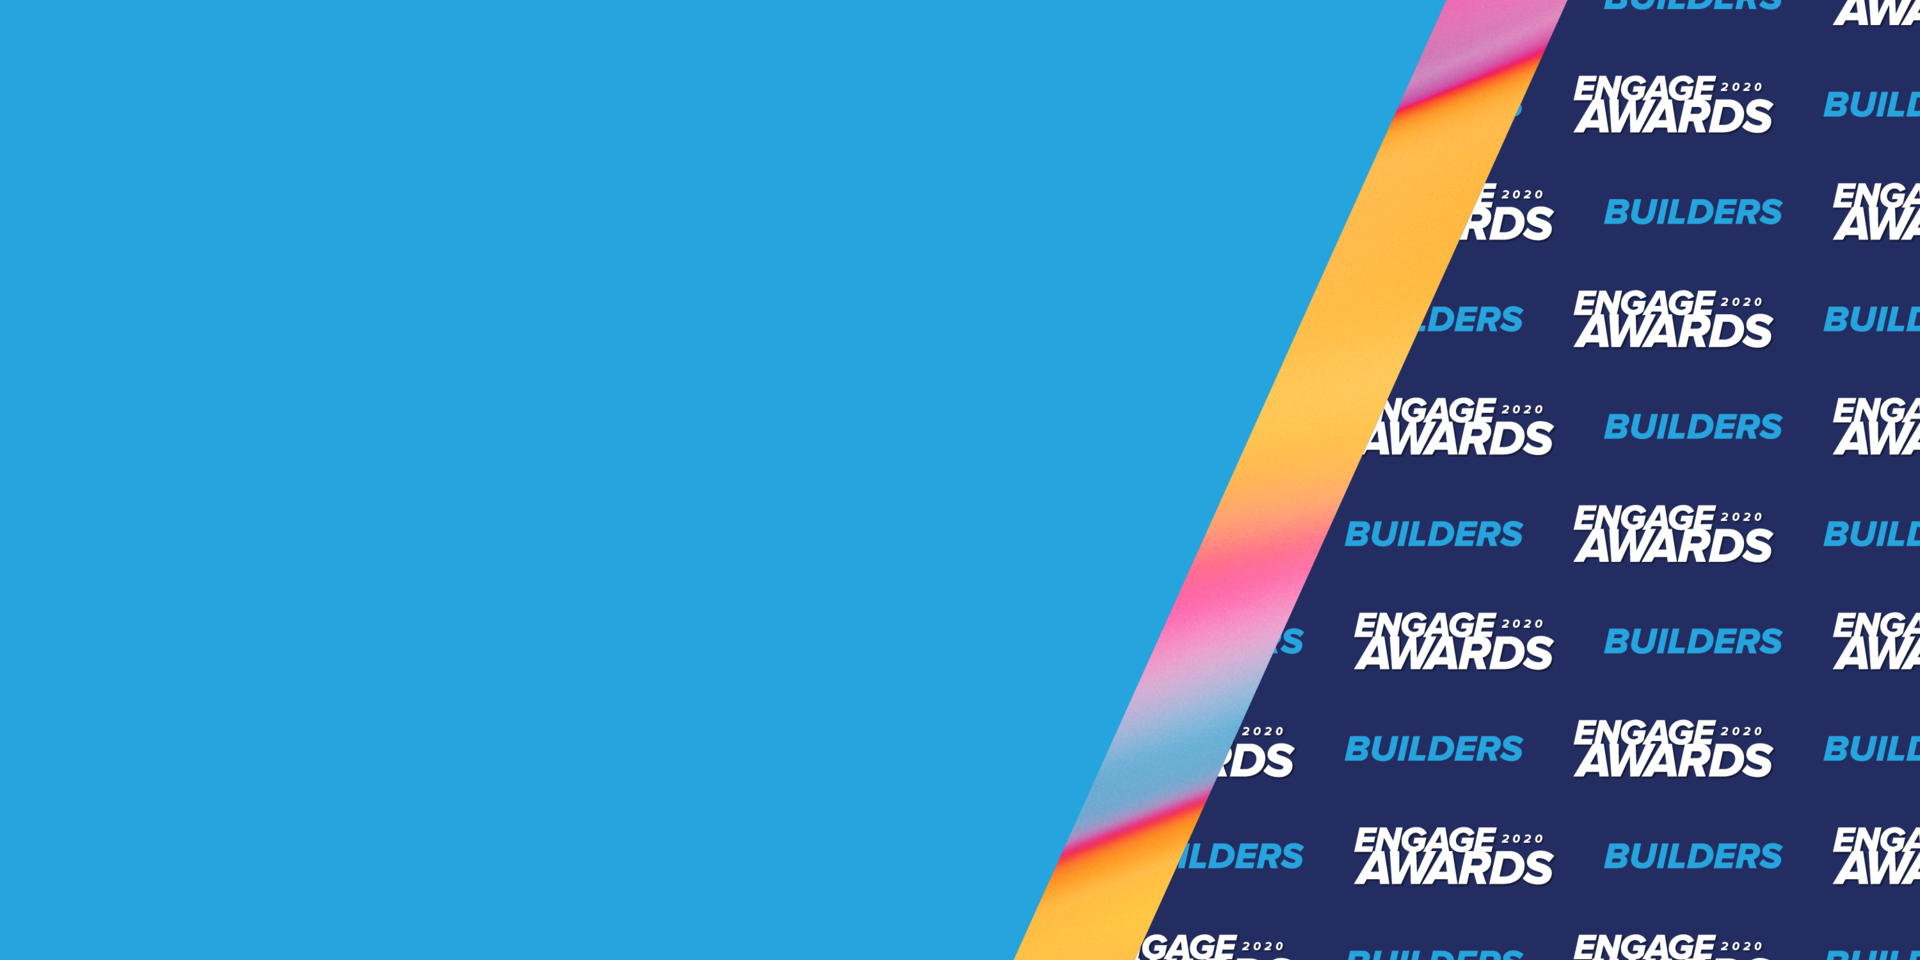 Acquia Engage Awards 2020 Builders Banner